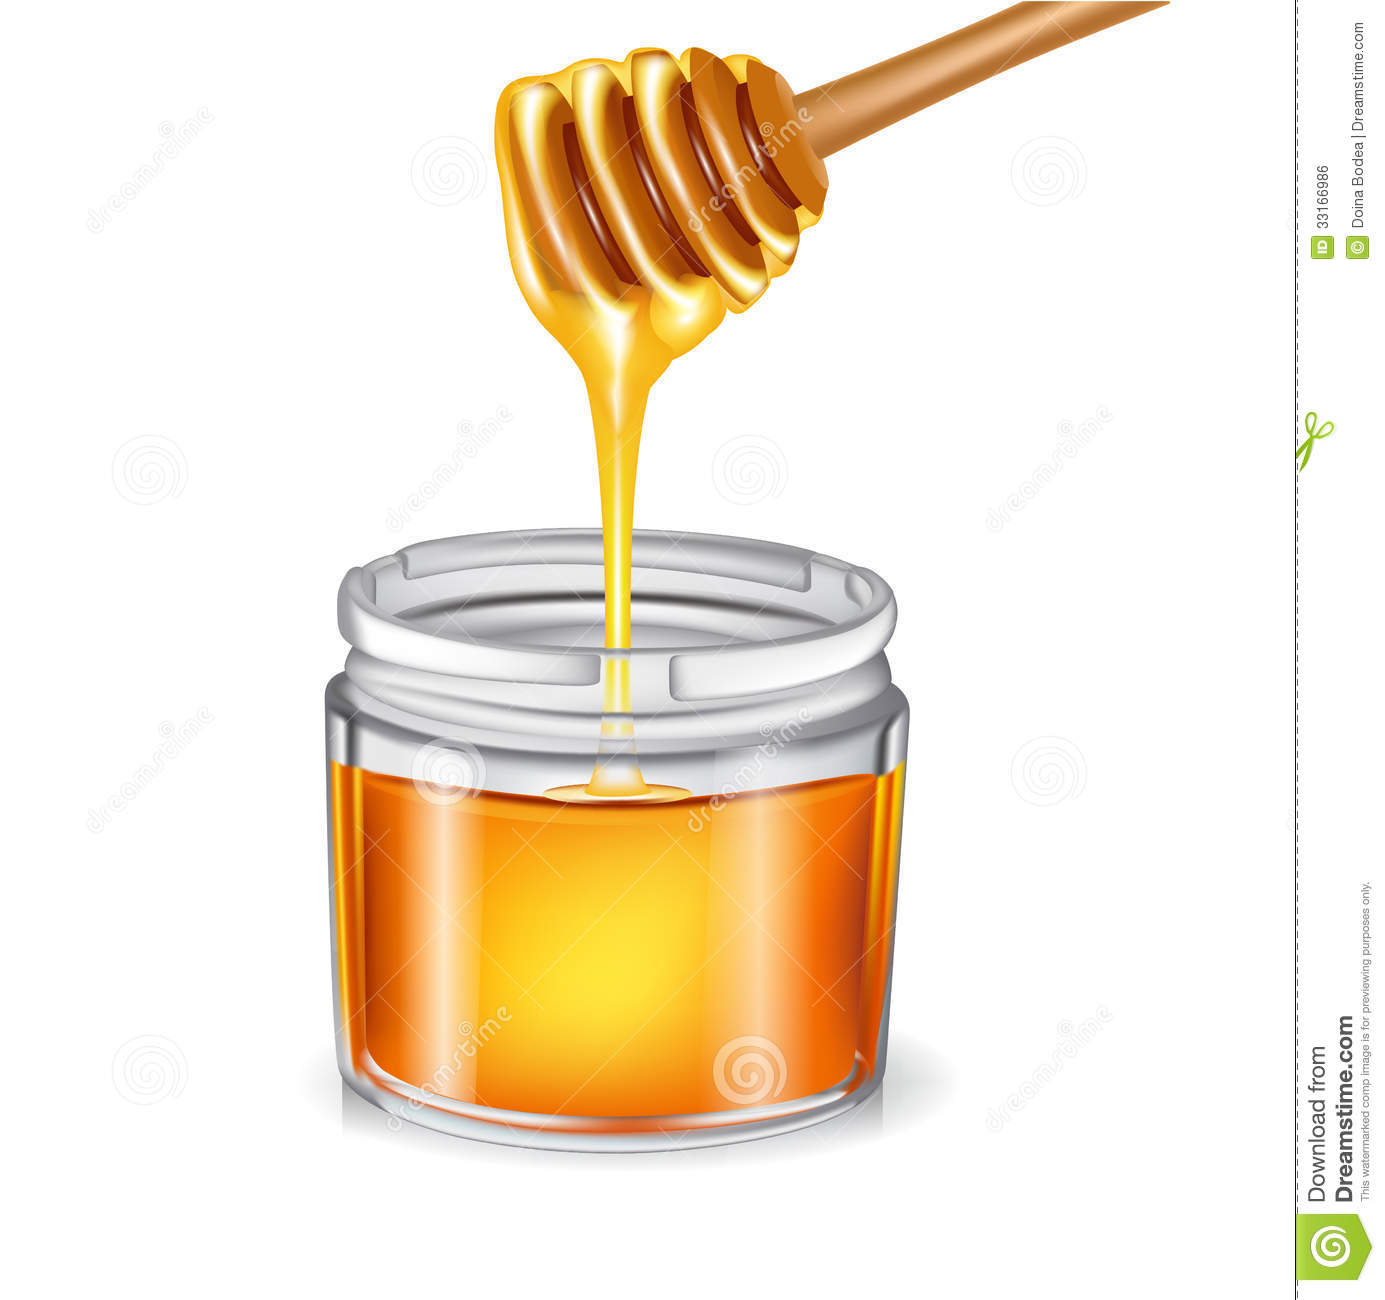 Clipart Honey Clipart - Honey Clipart